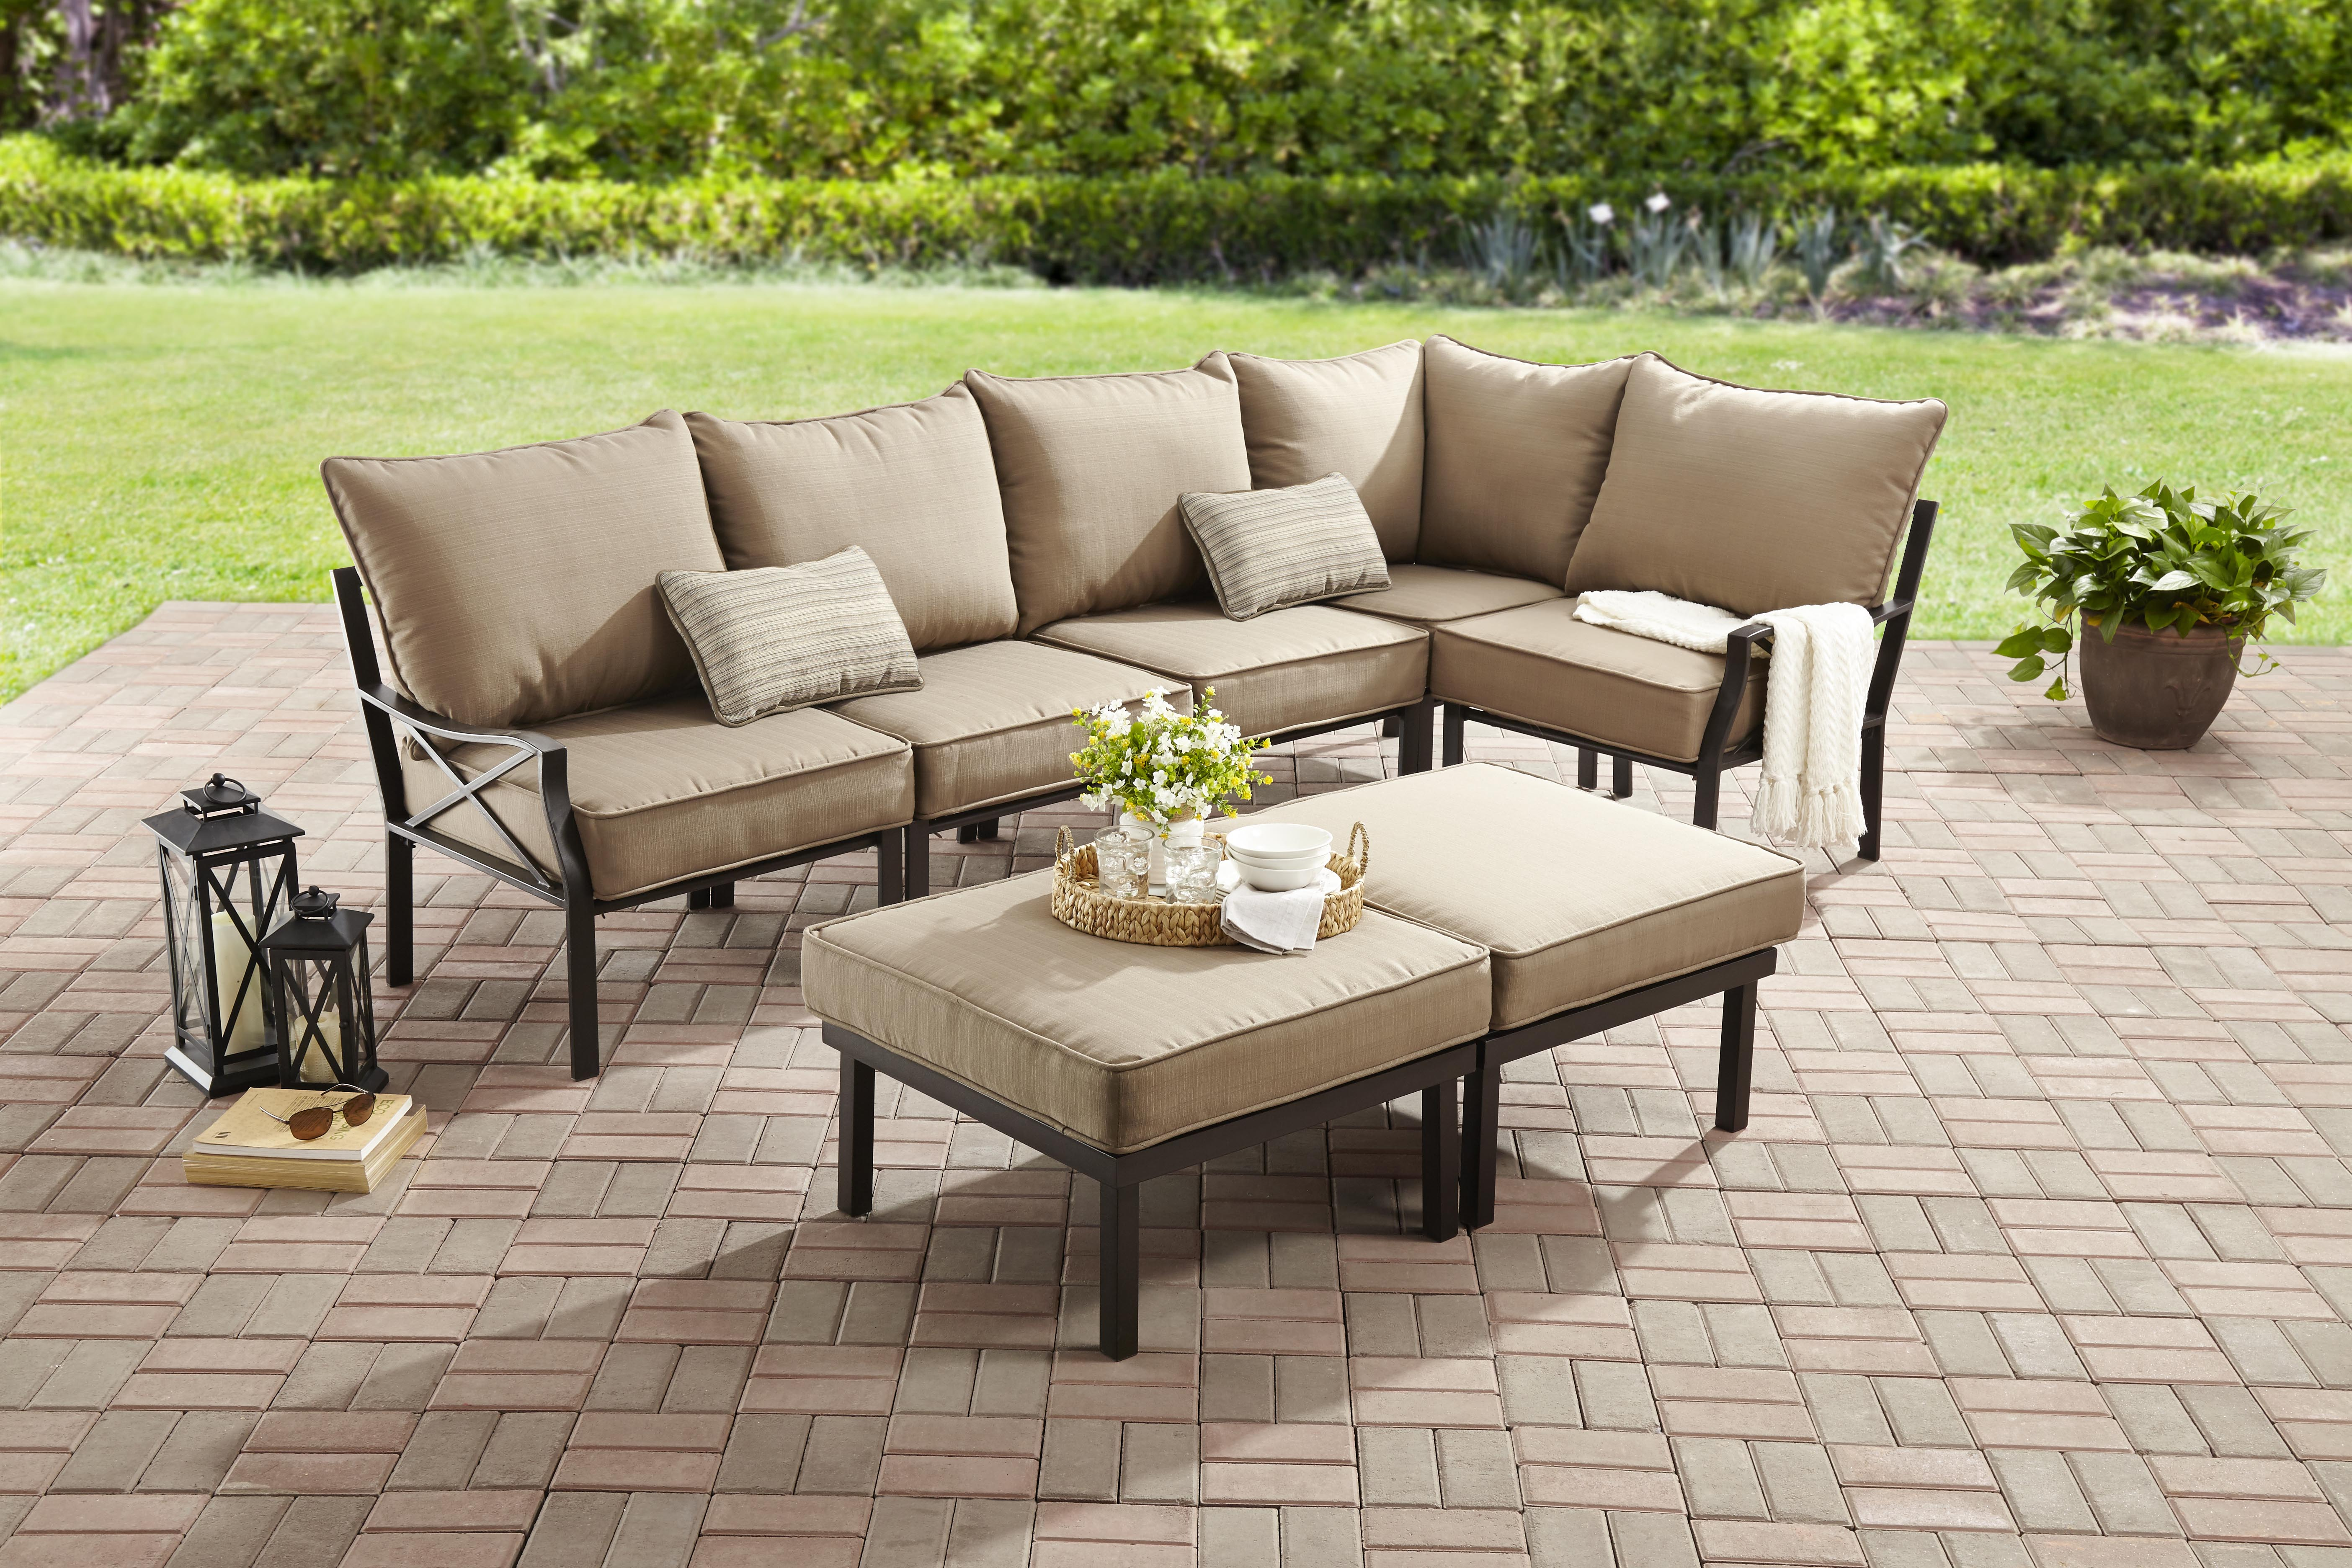 mainstays sandhill 7-piece outdoor sofa sectional set, seats 5 WLHGAZJ